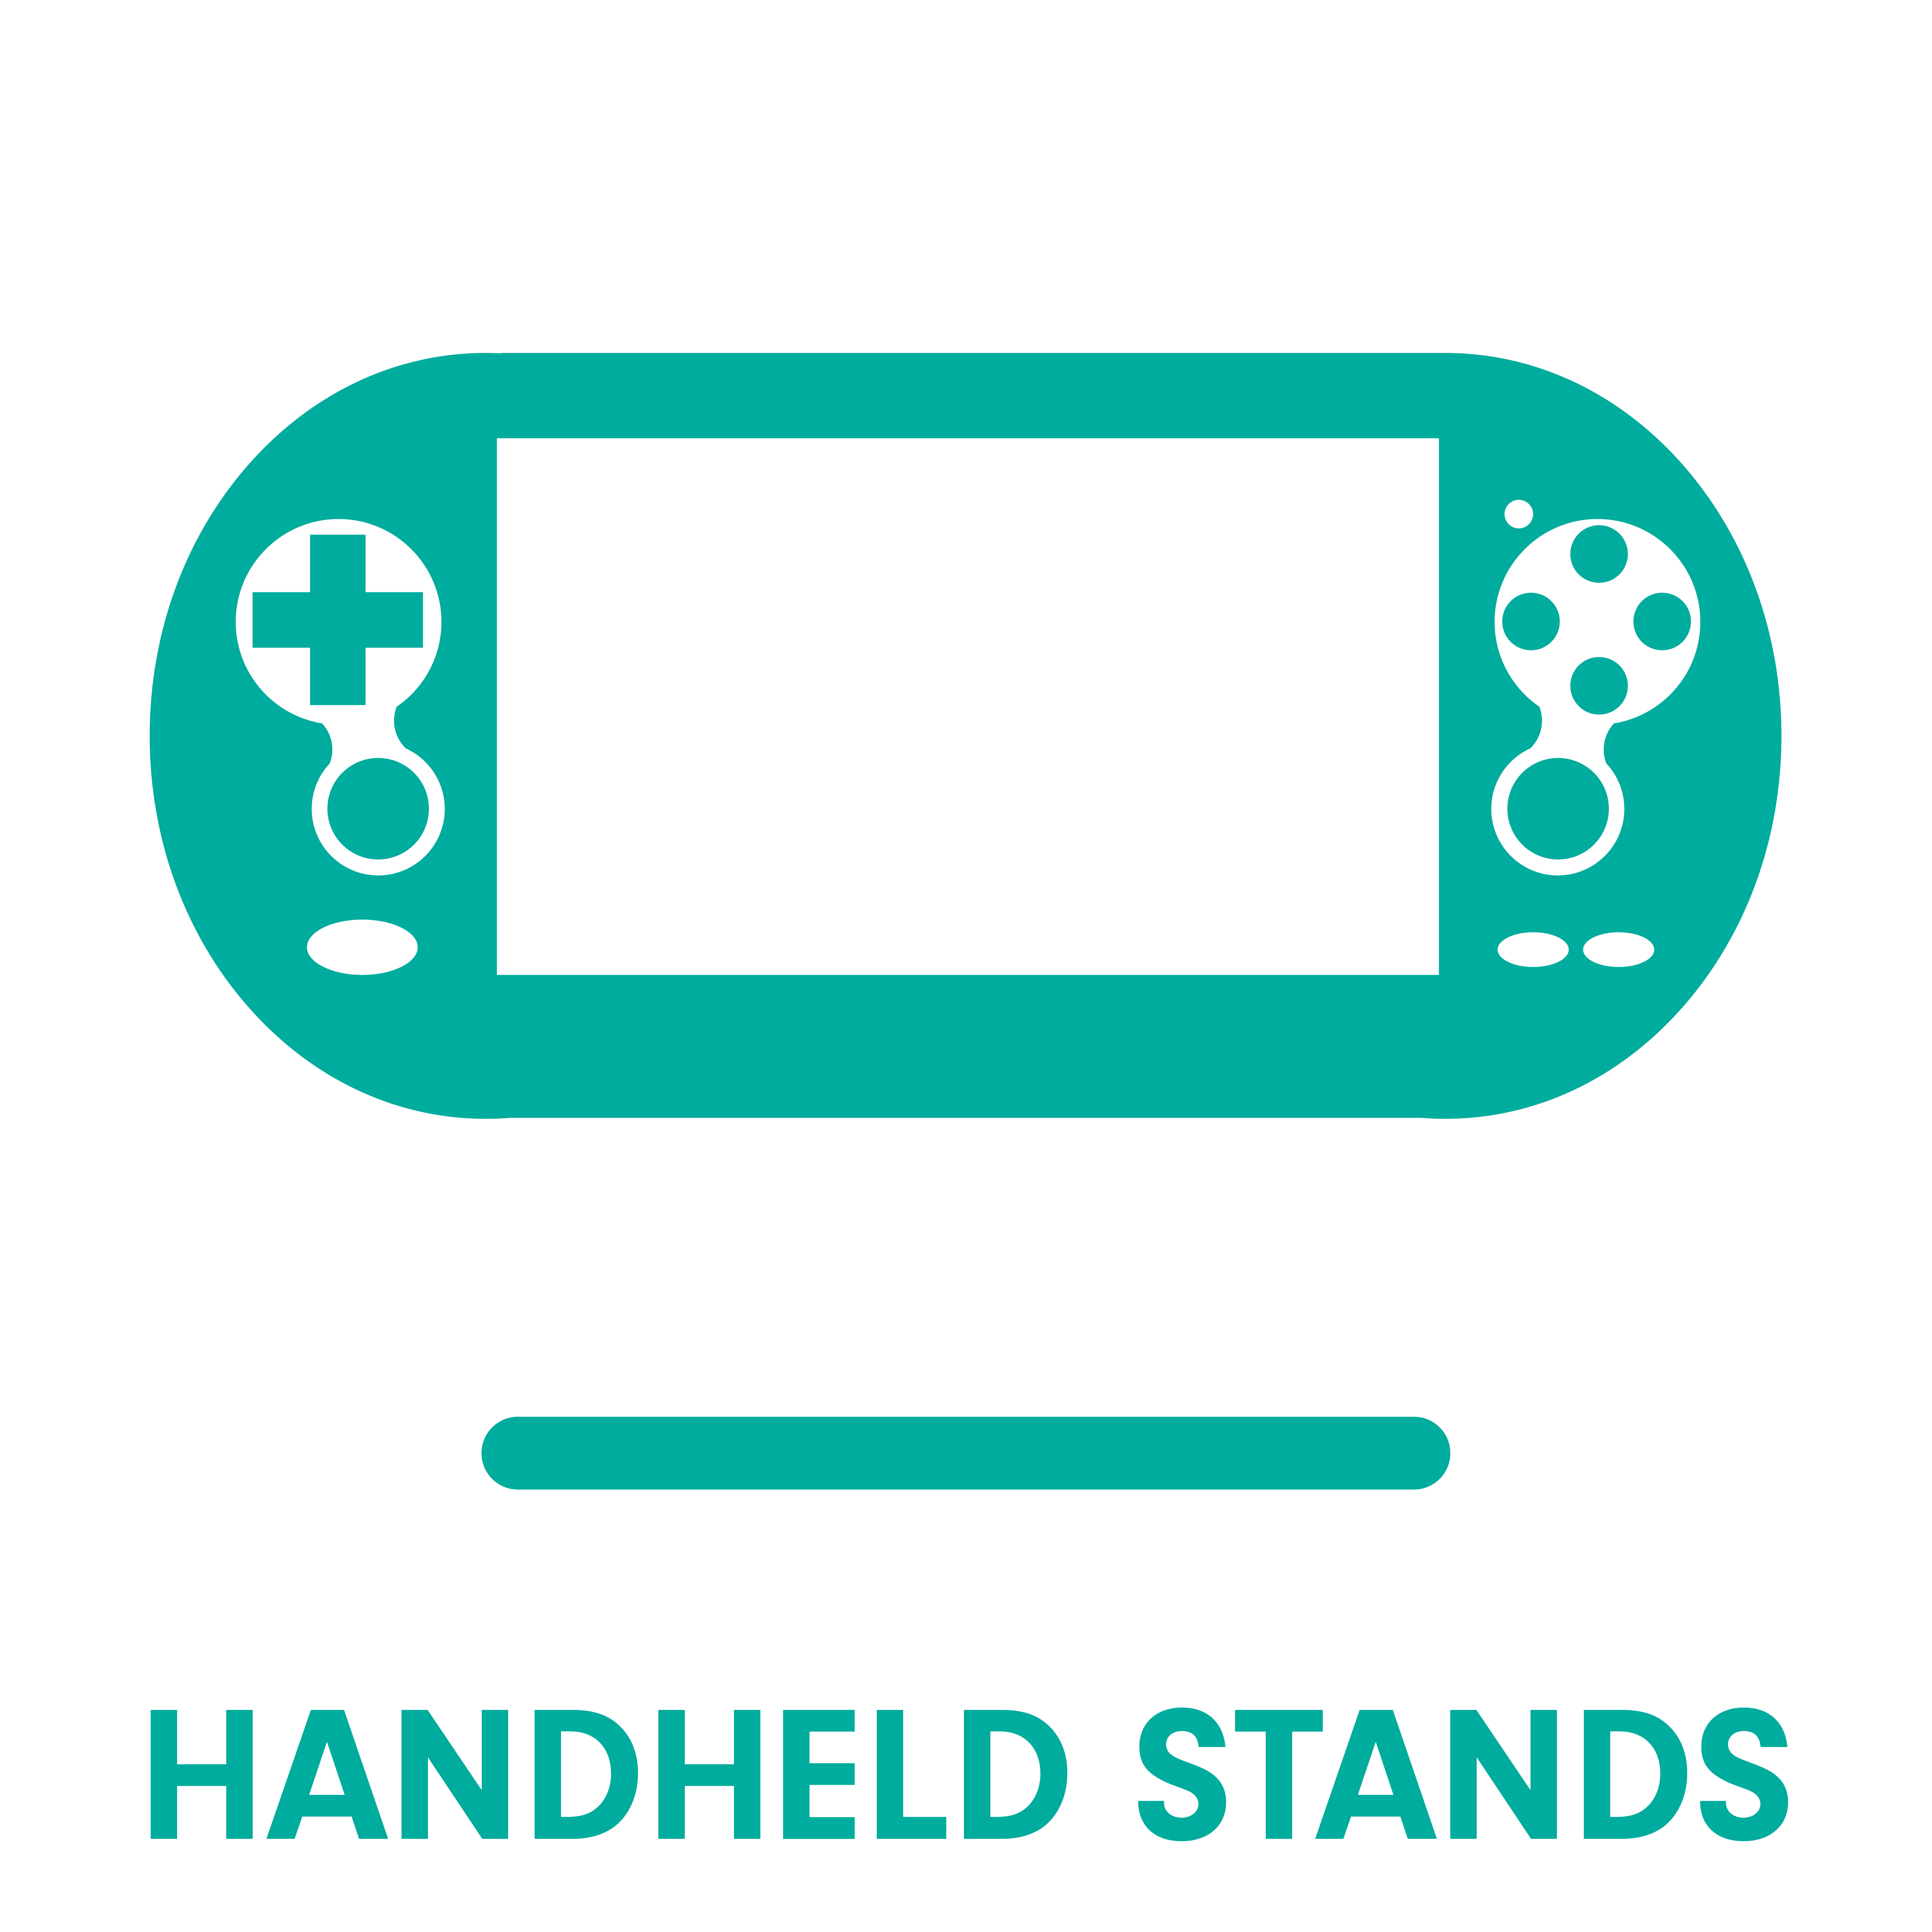 Handheld Stands category icon